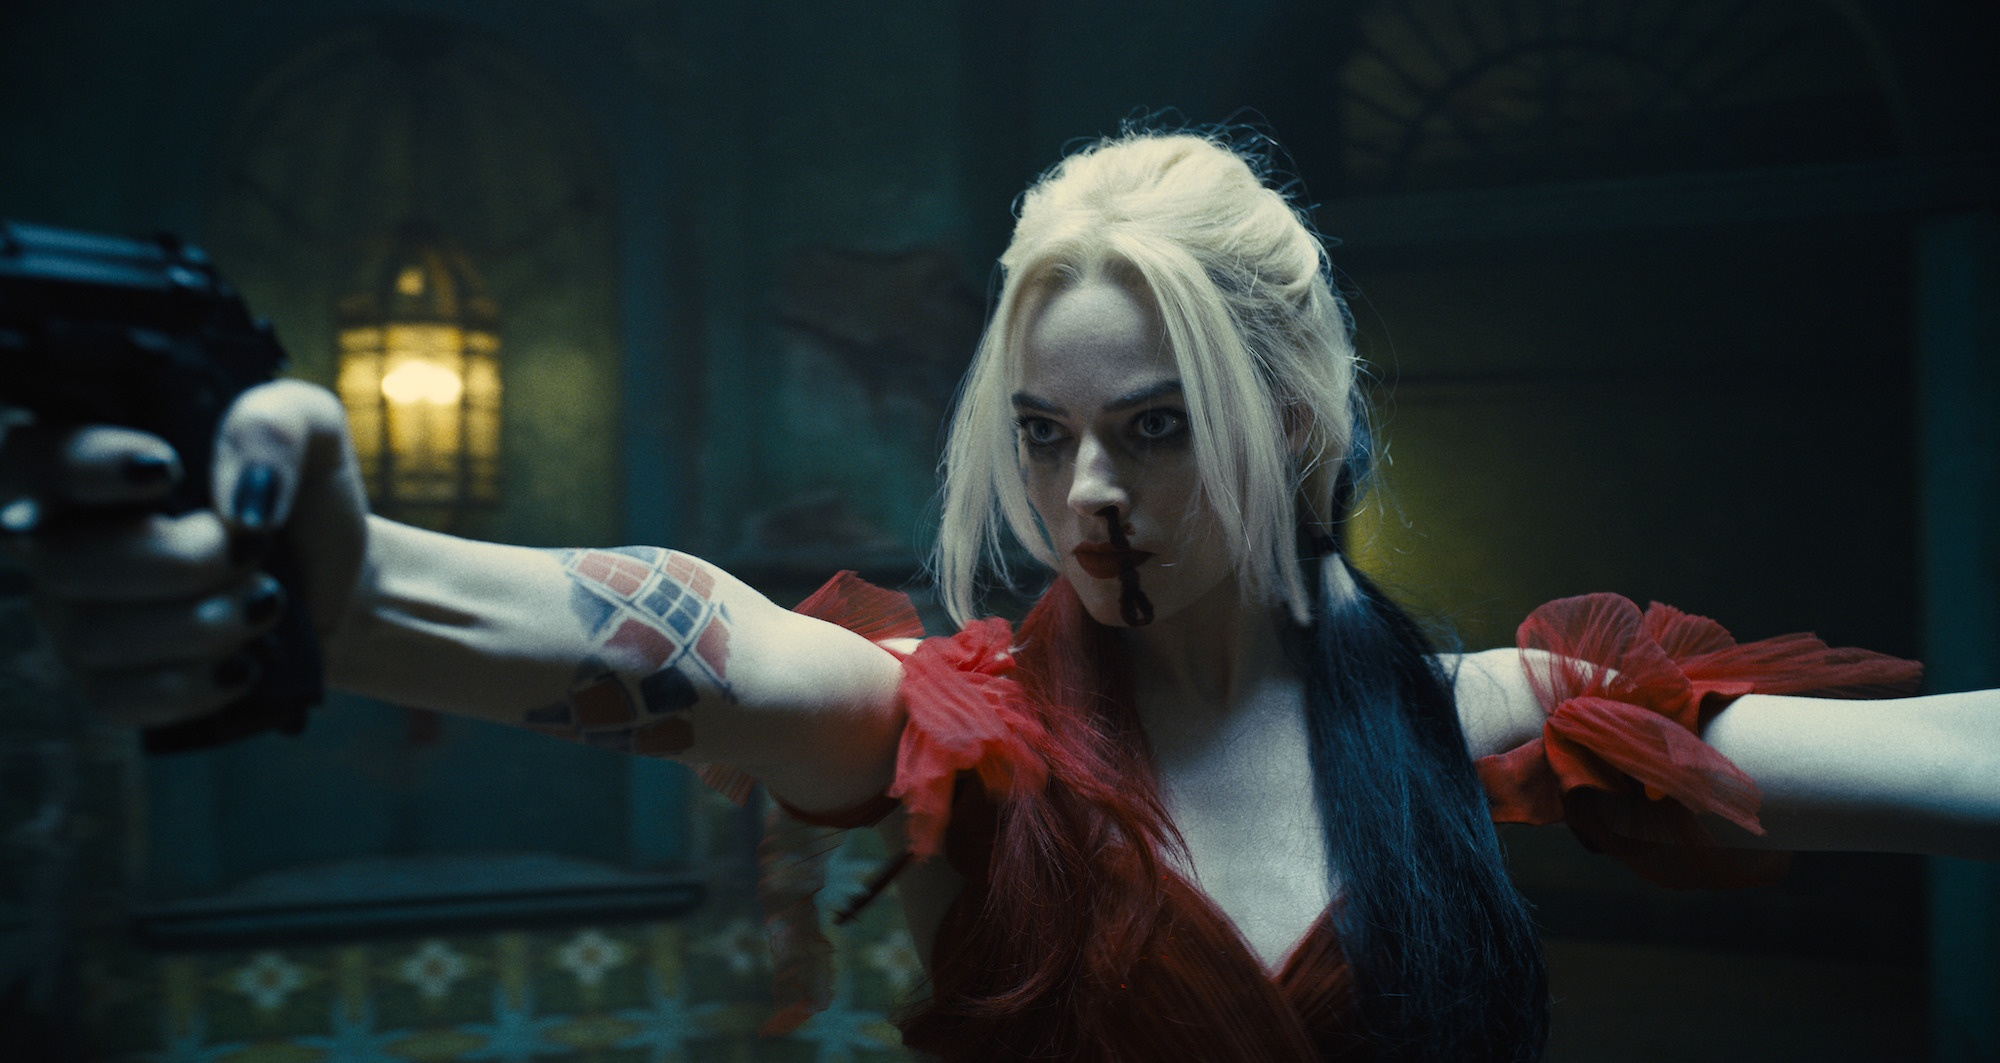 """TSS-TRL2-88883 Film Name: THE SUICIDE SQUAD Copyright: © 2021 Warner Bros. Entertainment Inc. All Rights Reserved. Photo Credit: Courtesy of Warner Bros. Pictures/™ & © DC Comics Caption: MARGOT ROBBIE as Harley Quinn in Warner Bros. Pictures' superhero action adventure """"THE SUICIDE SQUAD,"""" a Warner Bros. Pictures release."""